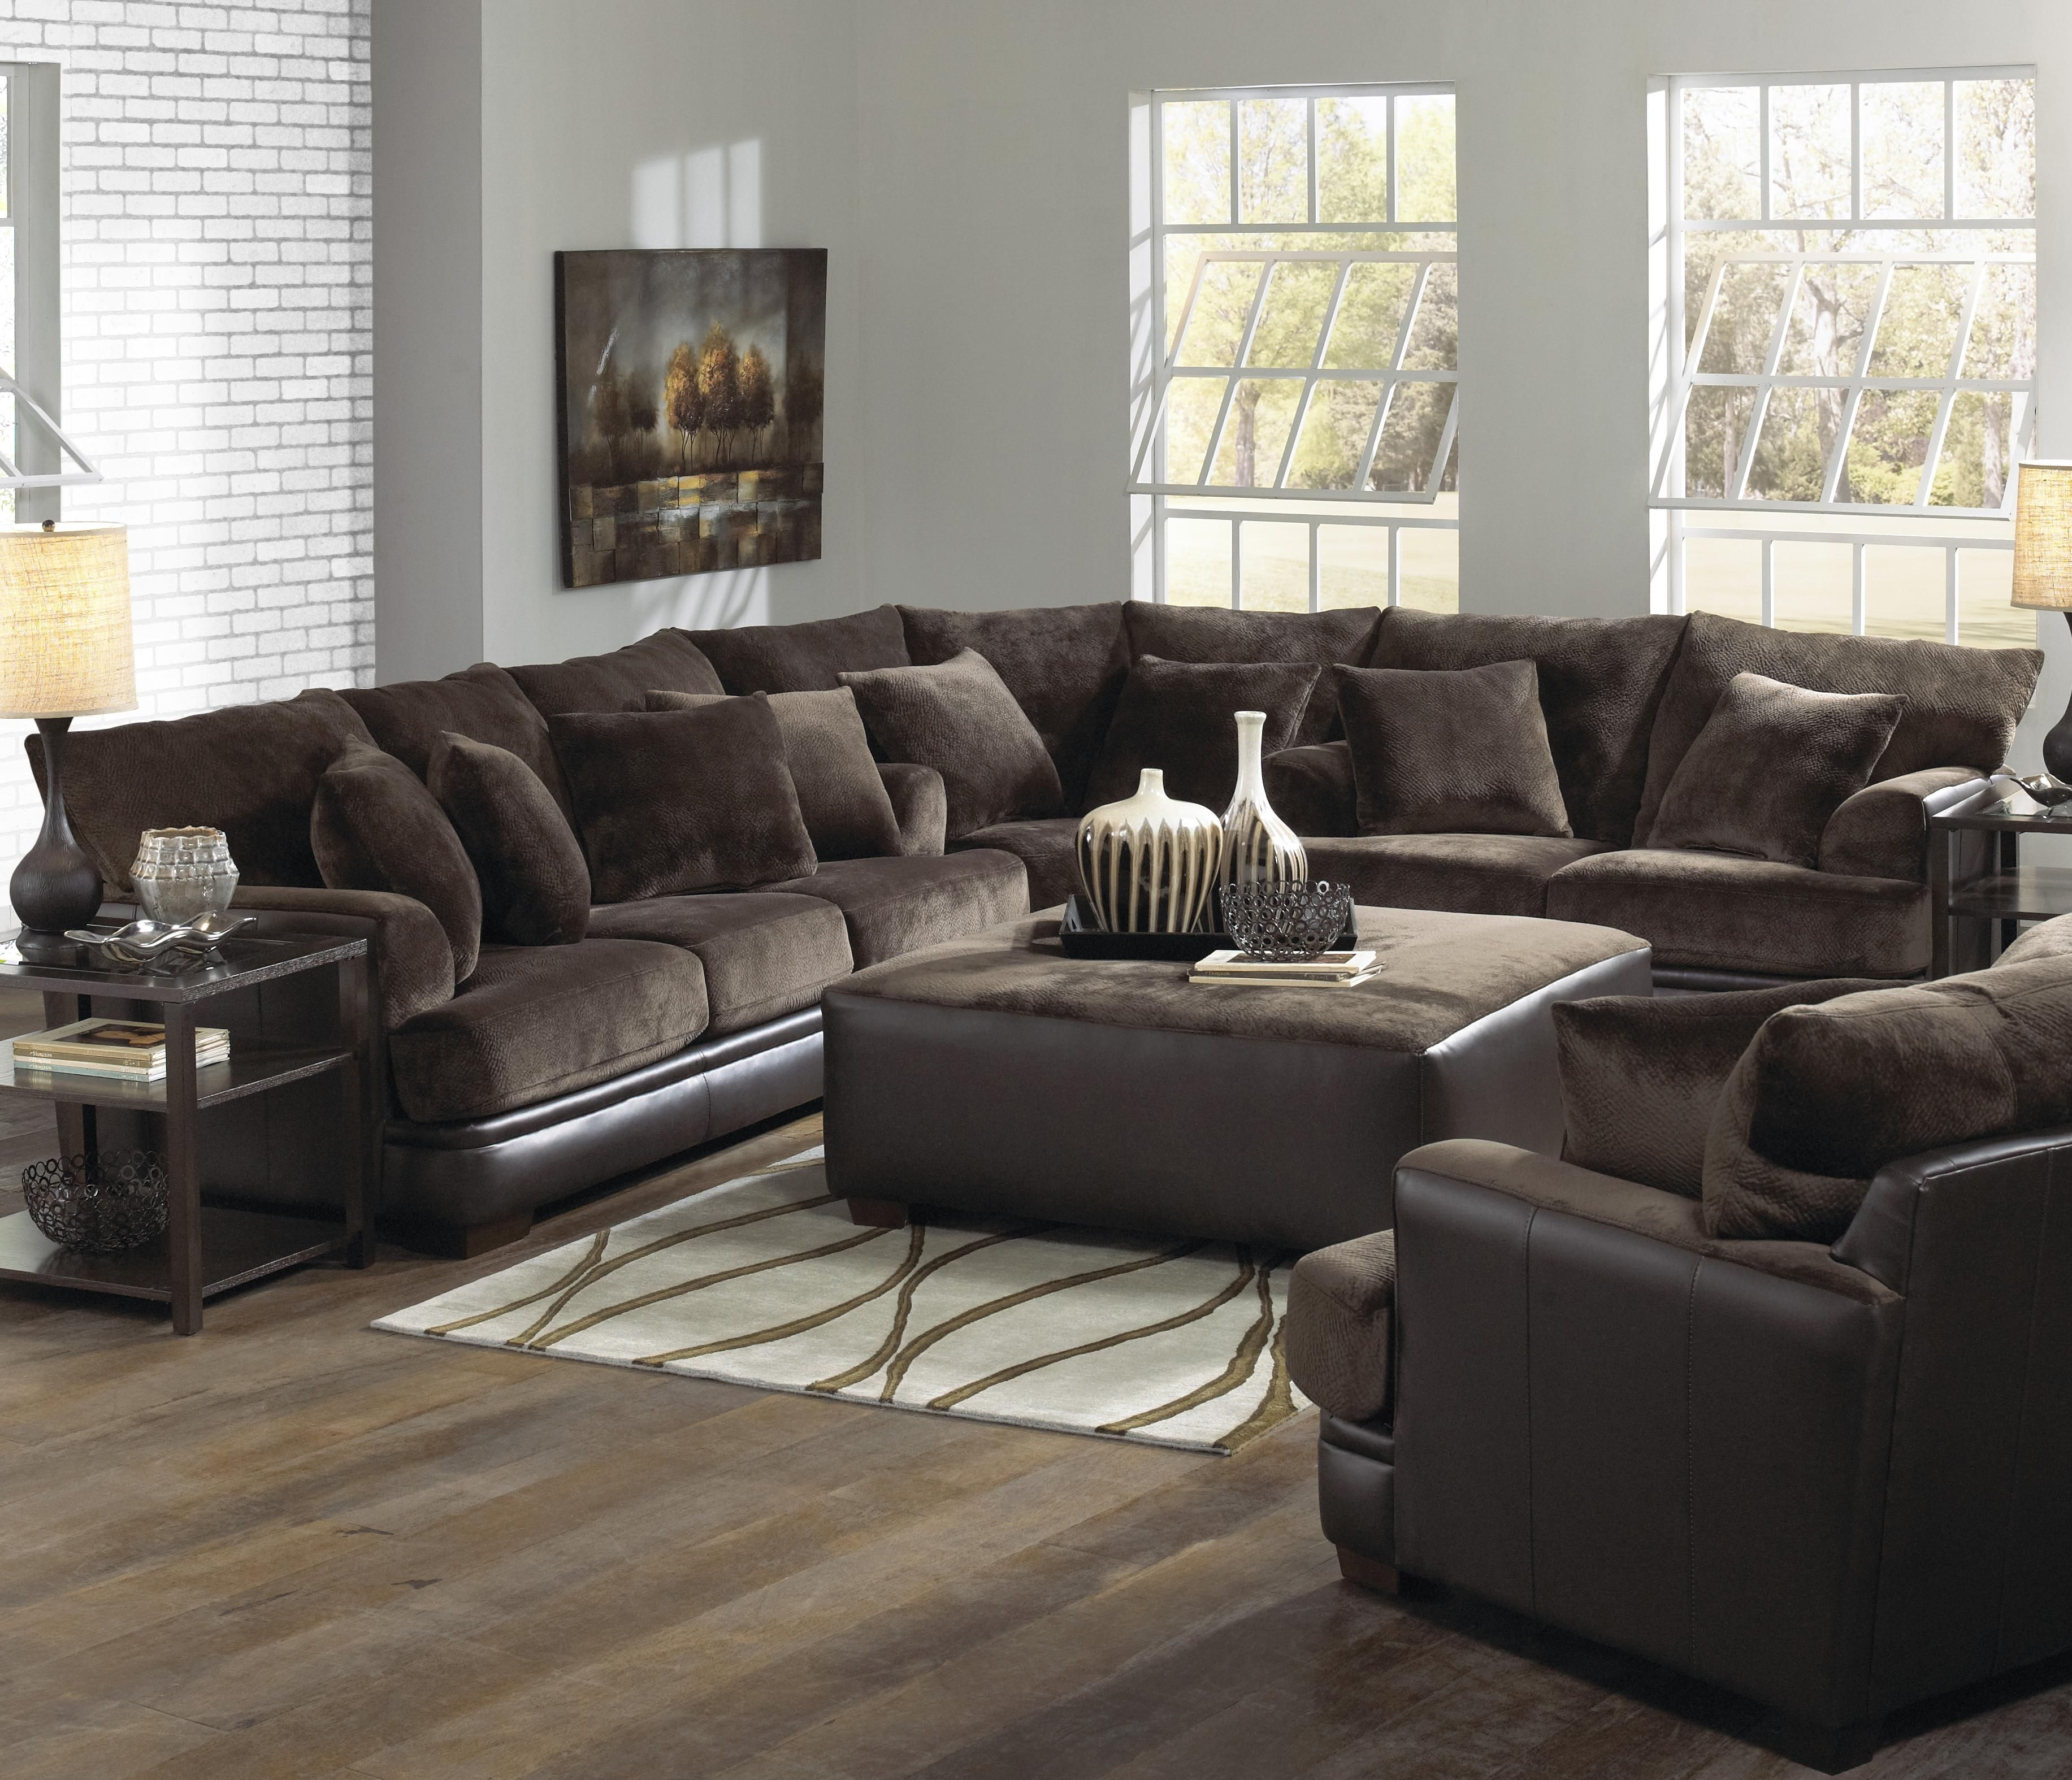 new couches worcester contemporary england providence item ma ri regatta rotmans leather lsg couch sofa boston sofas collections and sectional